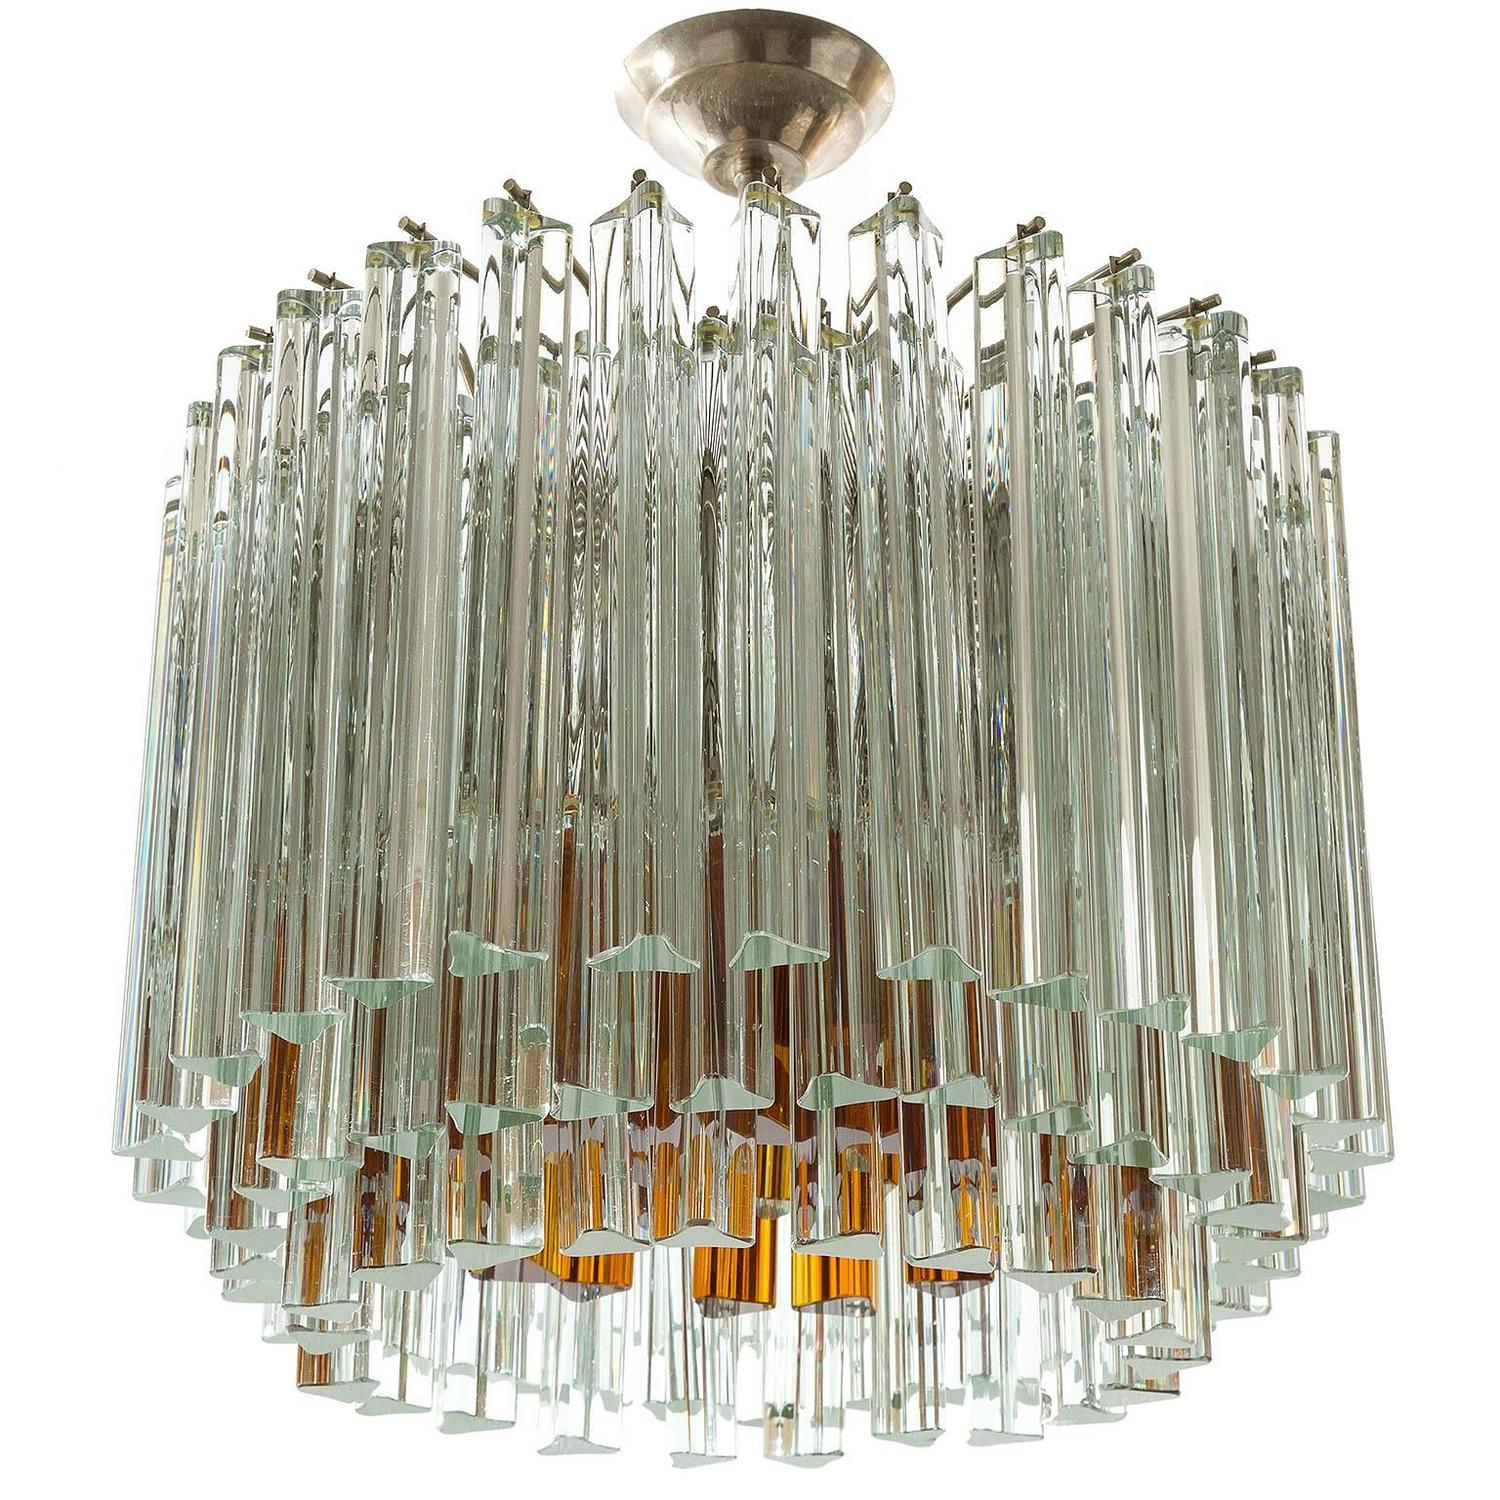 Venini glass chandelier triedri crystal glass italy 1960s for venini glass chandelier triedri crystal glass italy 1960s for sale at 1stdibs aloadofball Gallery